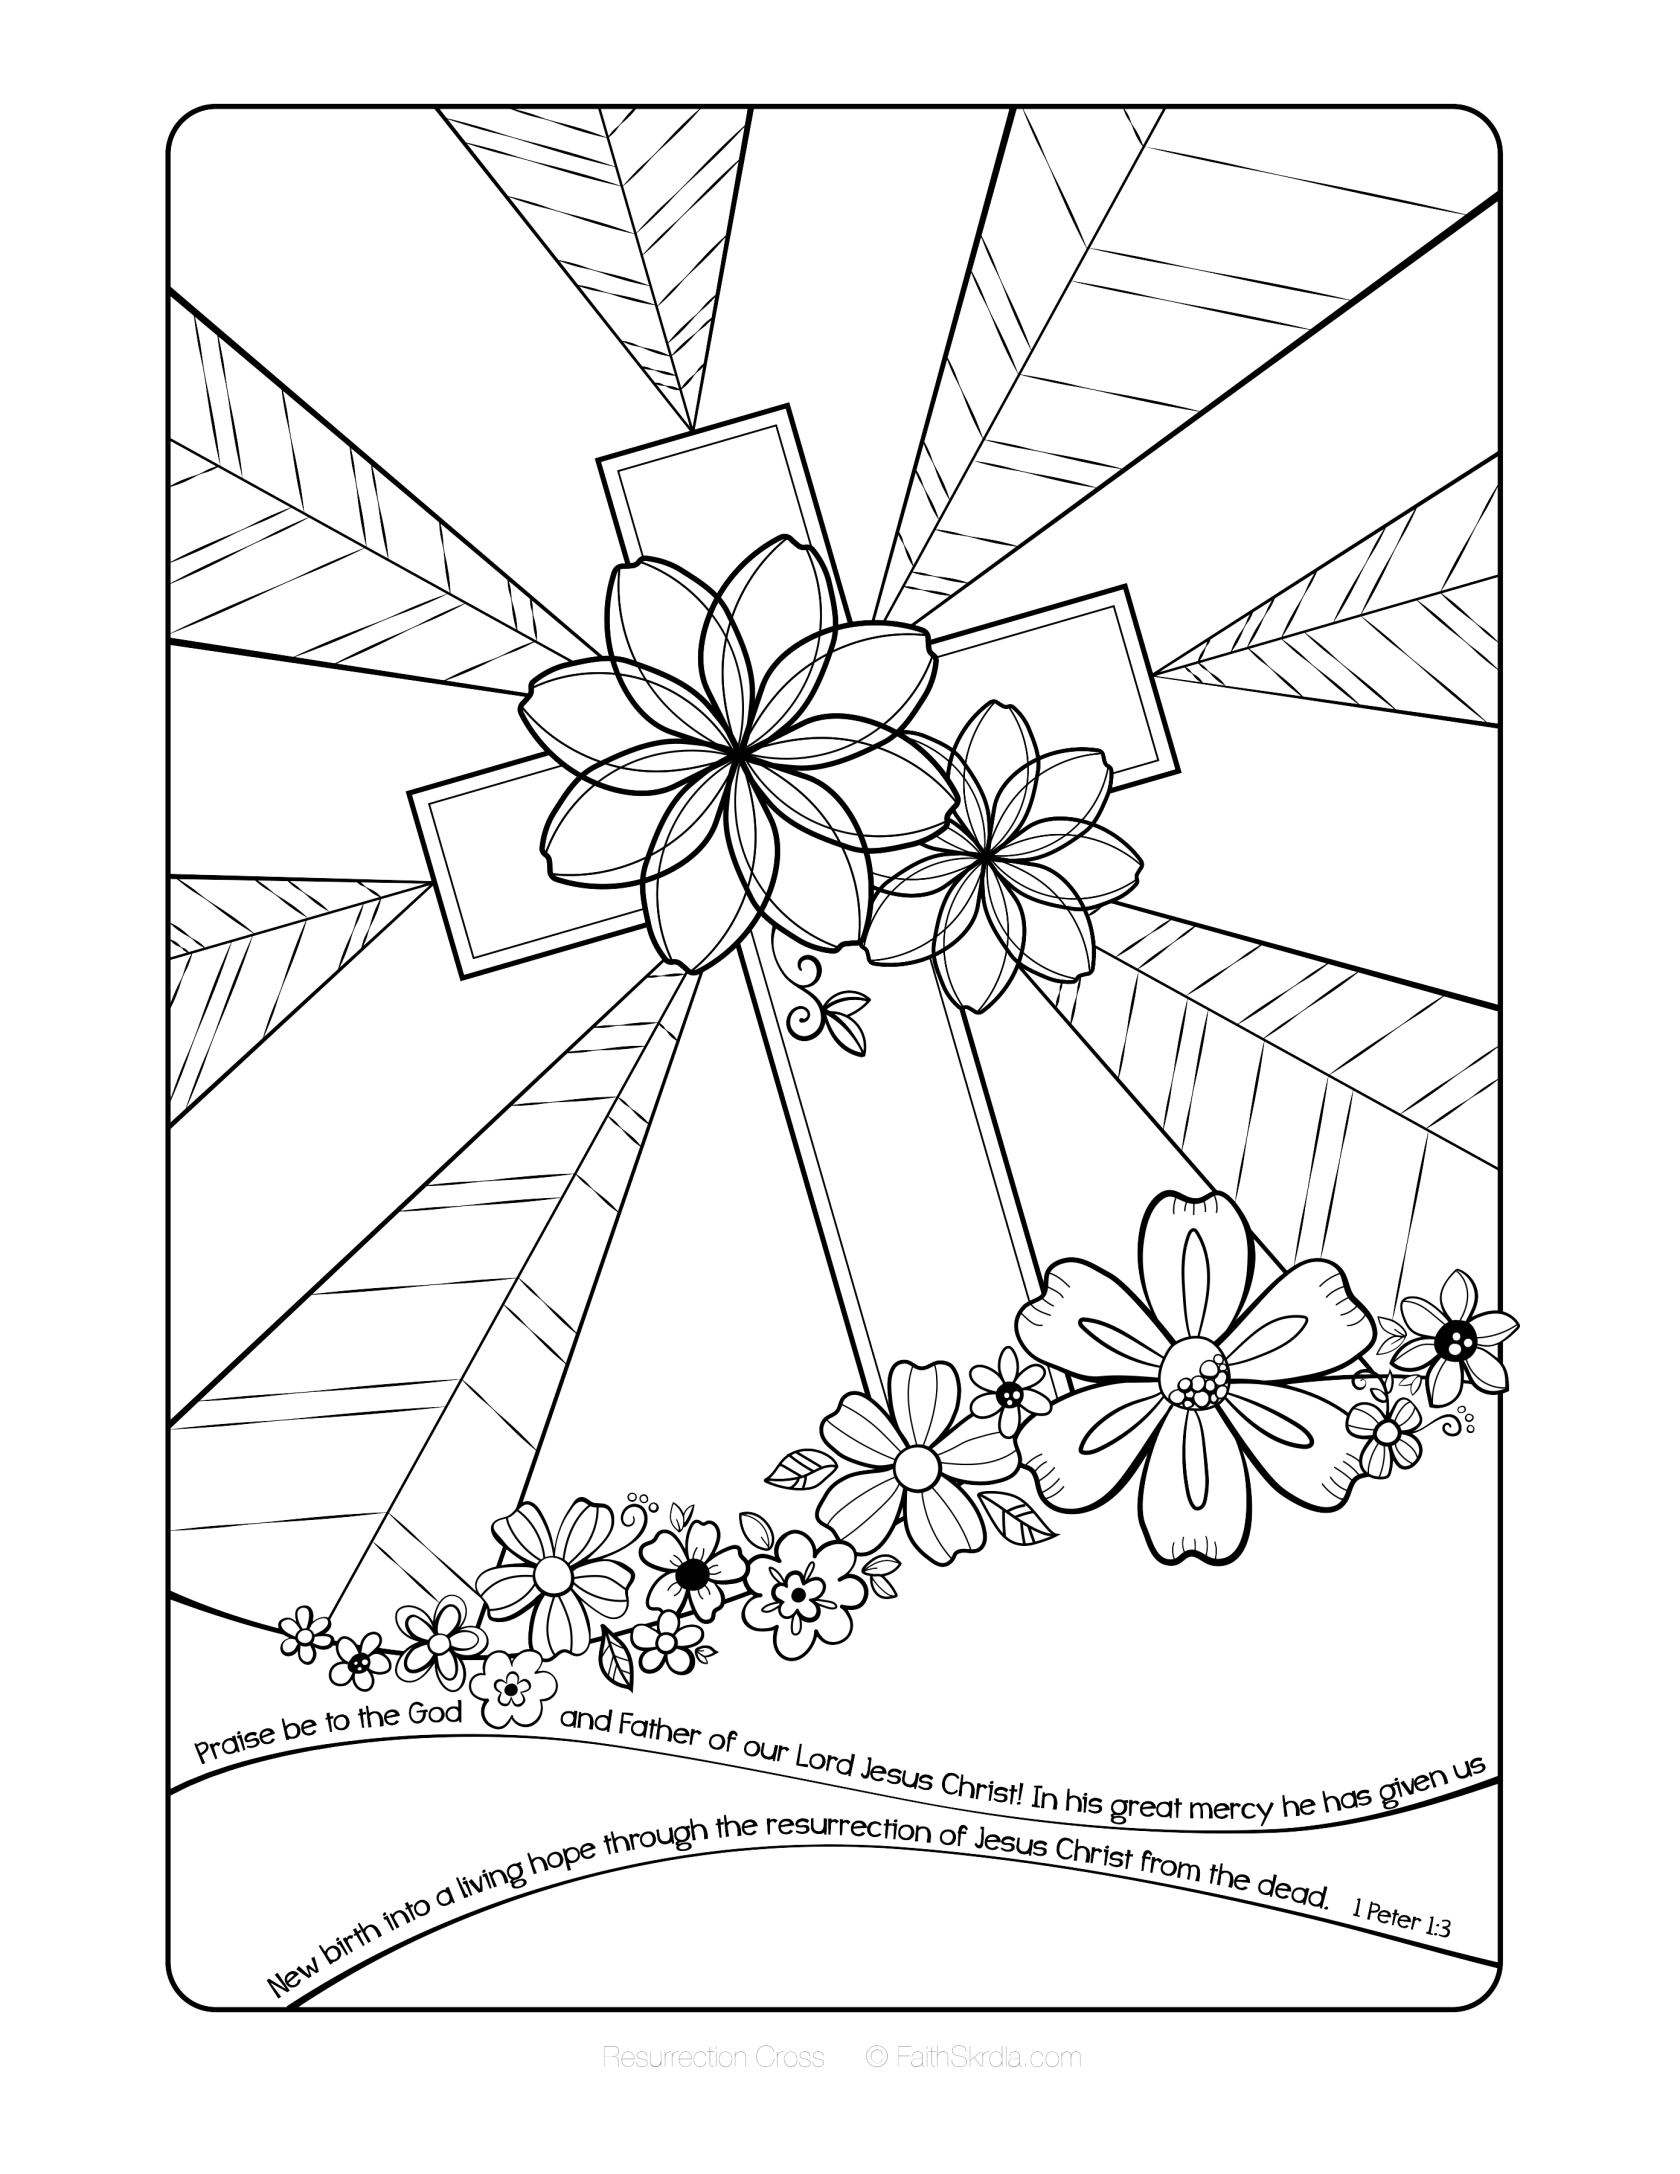 sunday school coloring pages easter Download-Free Easter Adult Coloring Page by Faith Skrdla Resurrection Cross 1 Peter 1 3 Bible Verse Christian coloring page for adults and grown up kids 17-r